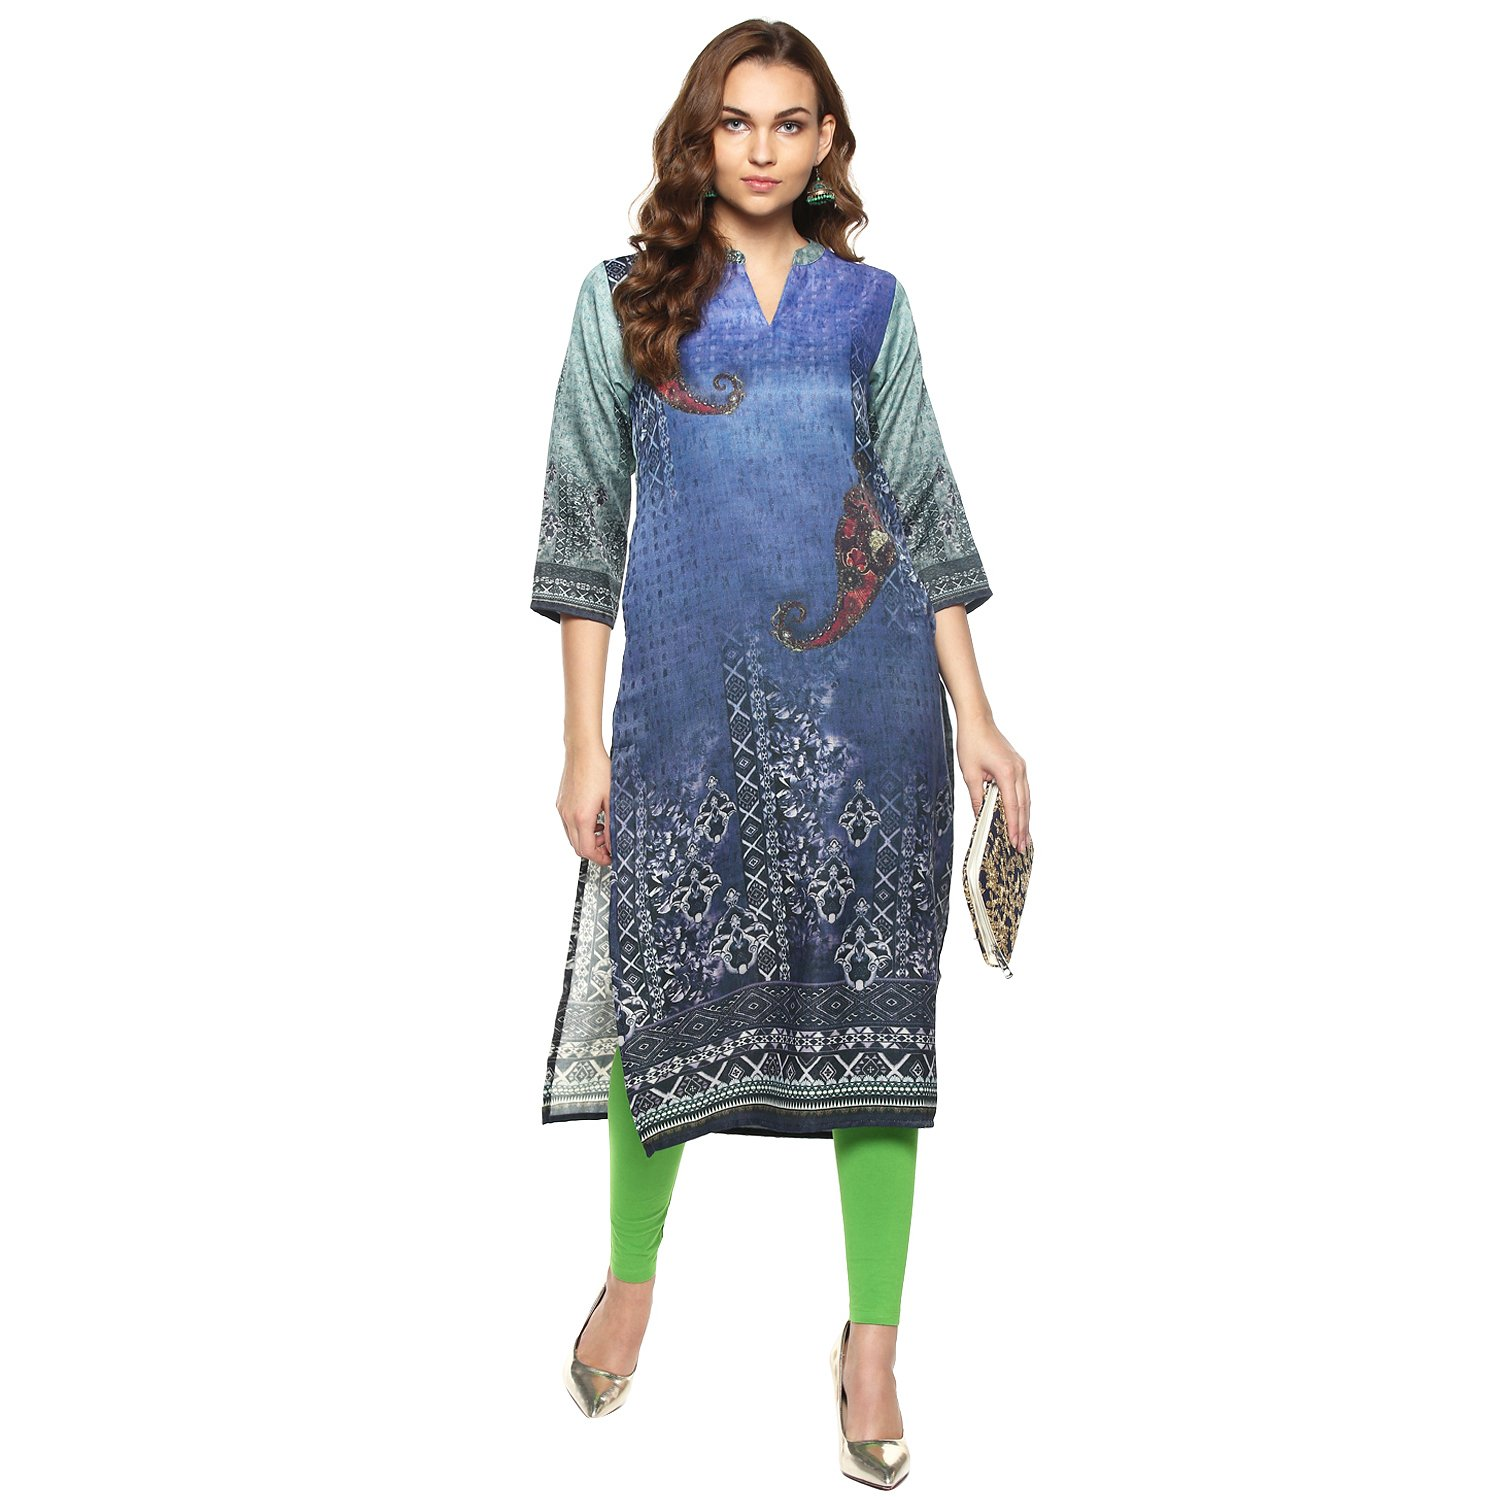 Kurtis Ethnic Women Kurta Kurti Tunic Digital Print Top Dress Casual Wear New Launch by Lagi Turq